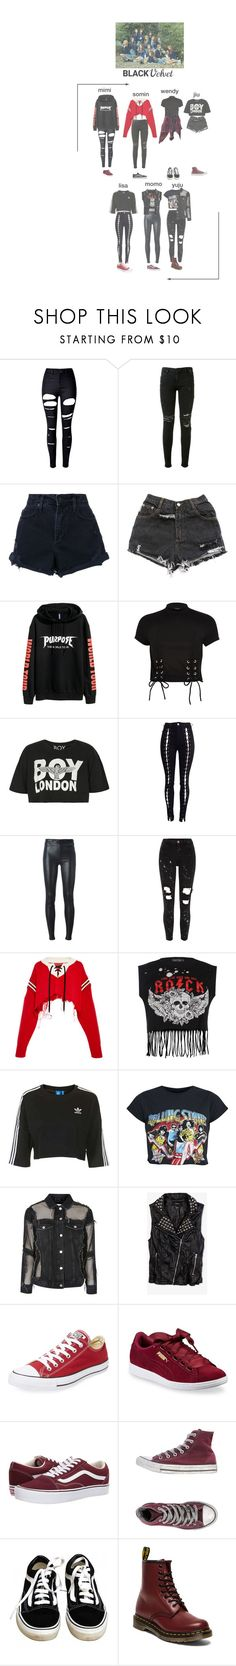 """""""(1/2) BlackVelvet Mercury Entertaintment audition."""" by blackvelvetofficial ❤ liked on Polyvore featuring WithChic, RtA, Nobody Denim, H&M, River Island, BOY London, Helmut Lang, Monse, Boohoo and Topshop"""